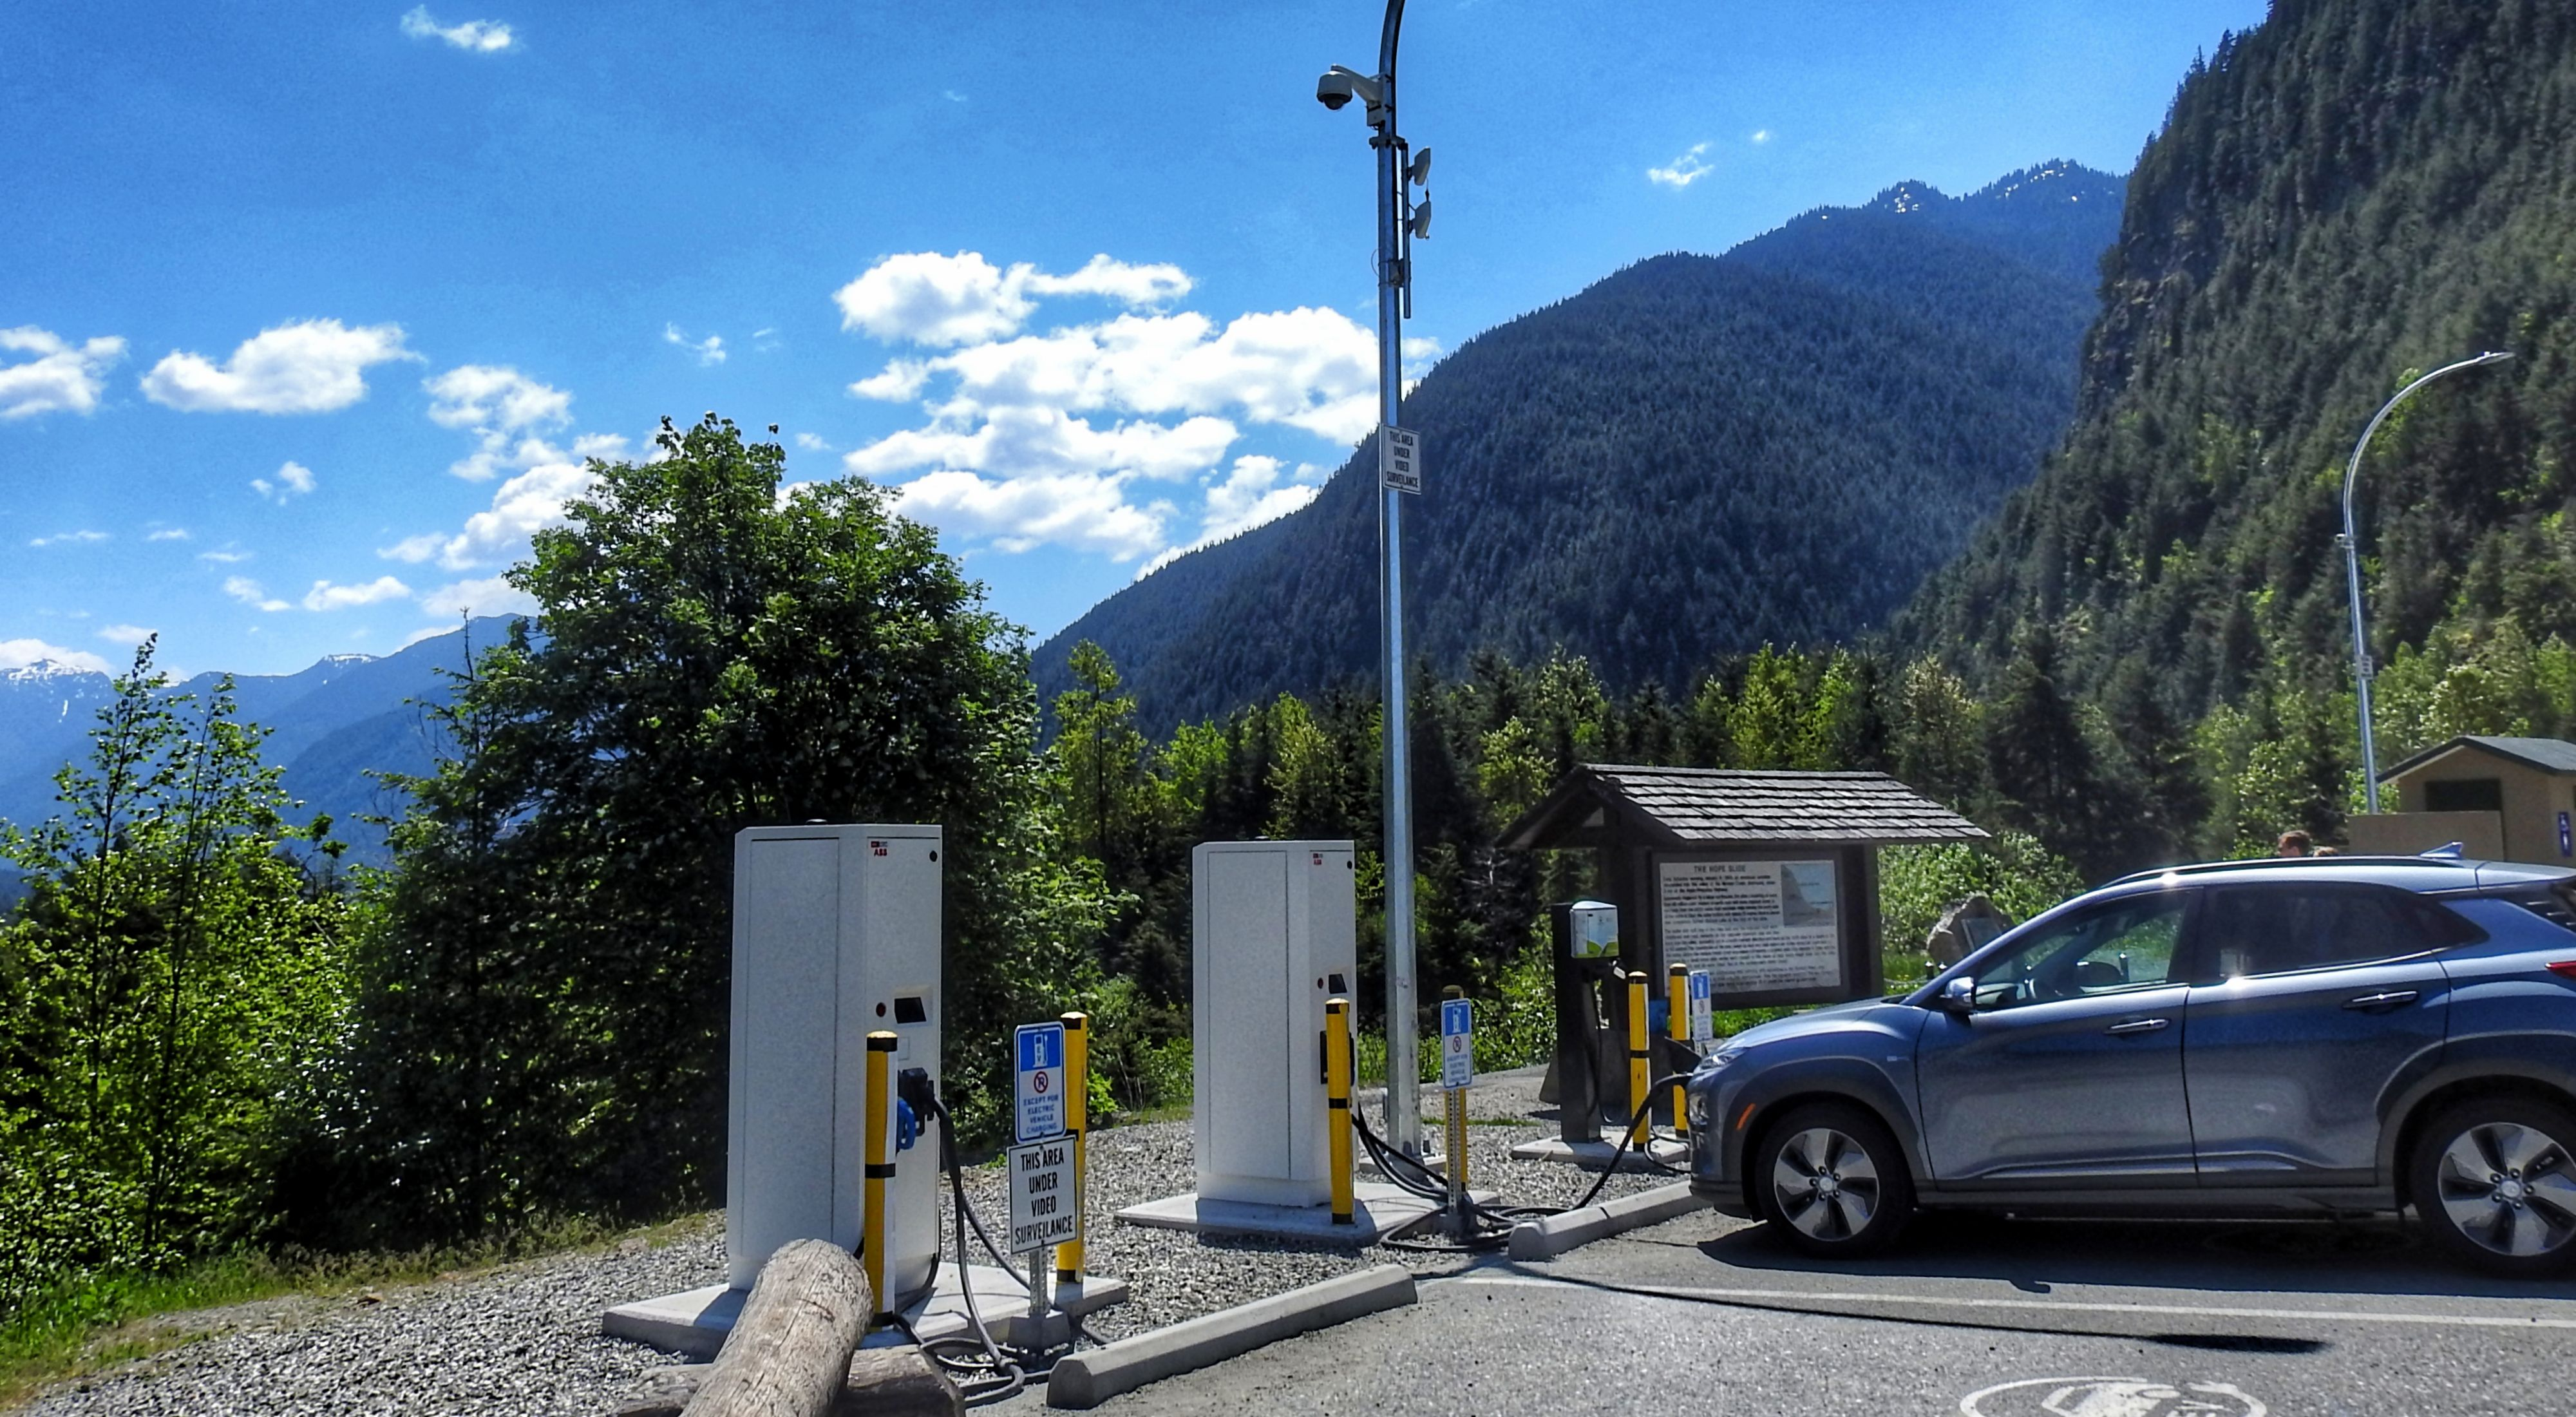 An electric vehicle is at a charging station at a scenic mountainous location in British Columbia.